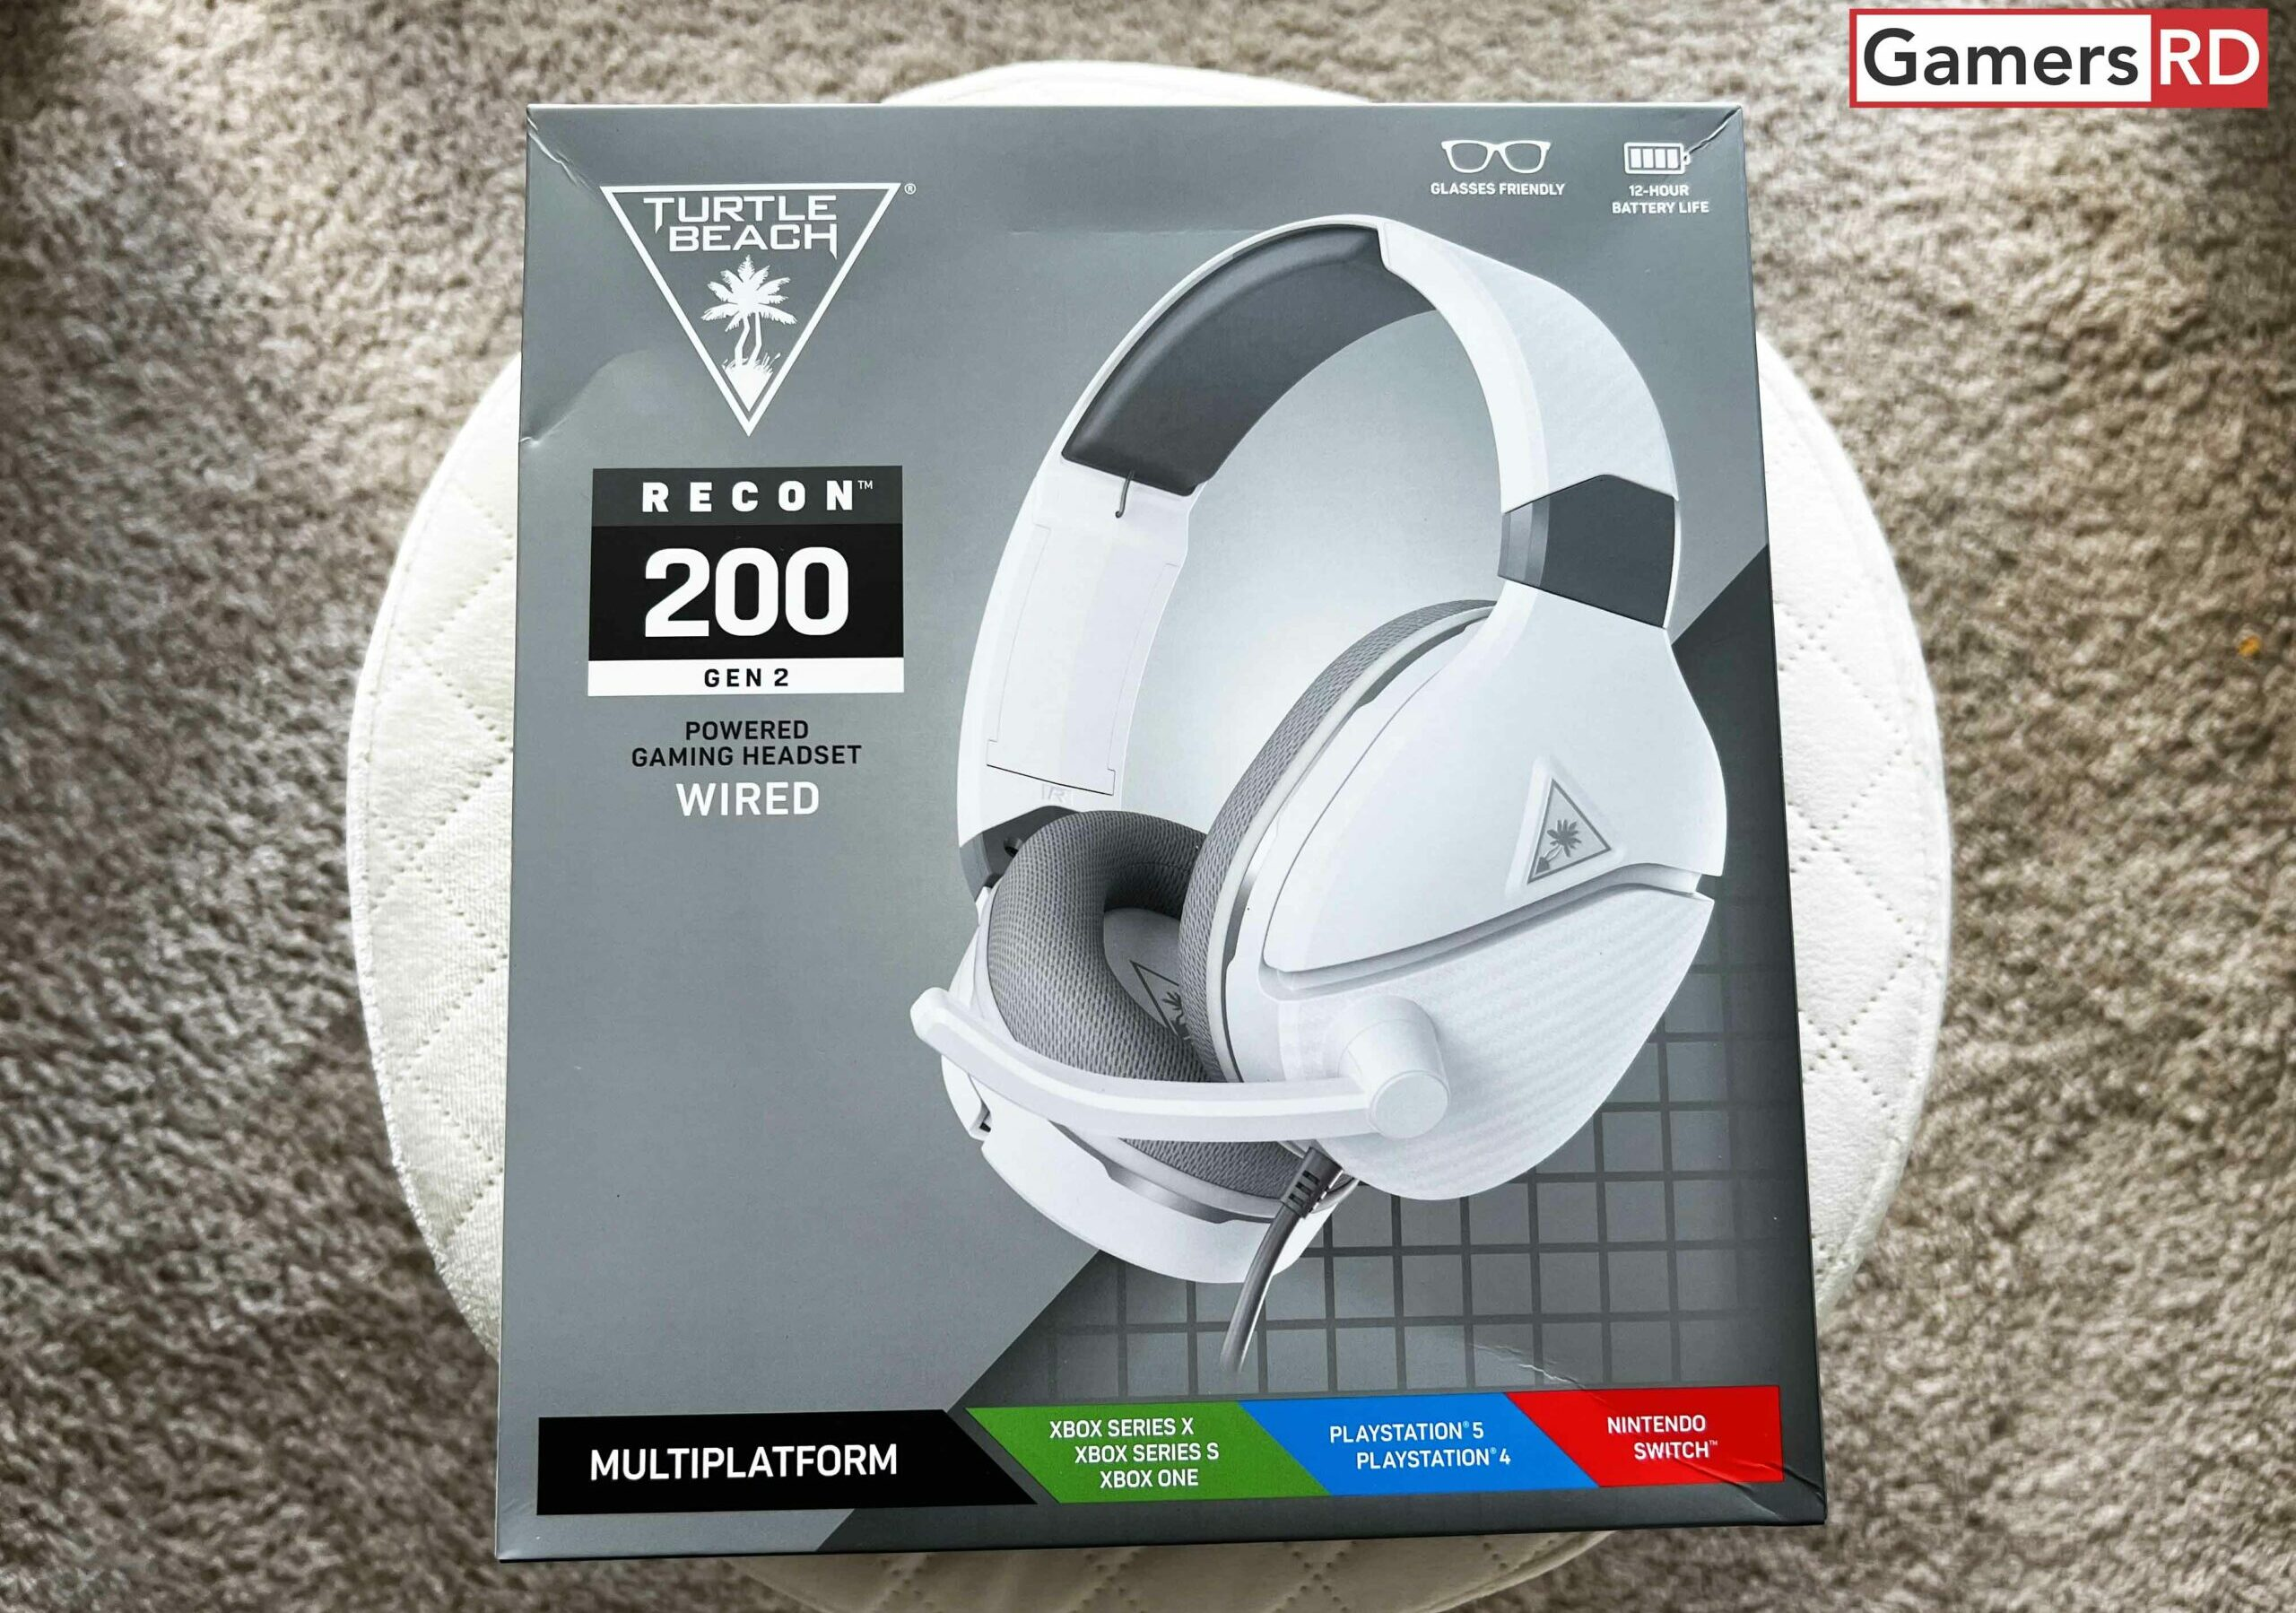 Turtle Beach Recon 200 Gen 2 Headsets Review, GamersRD